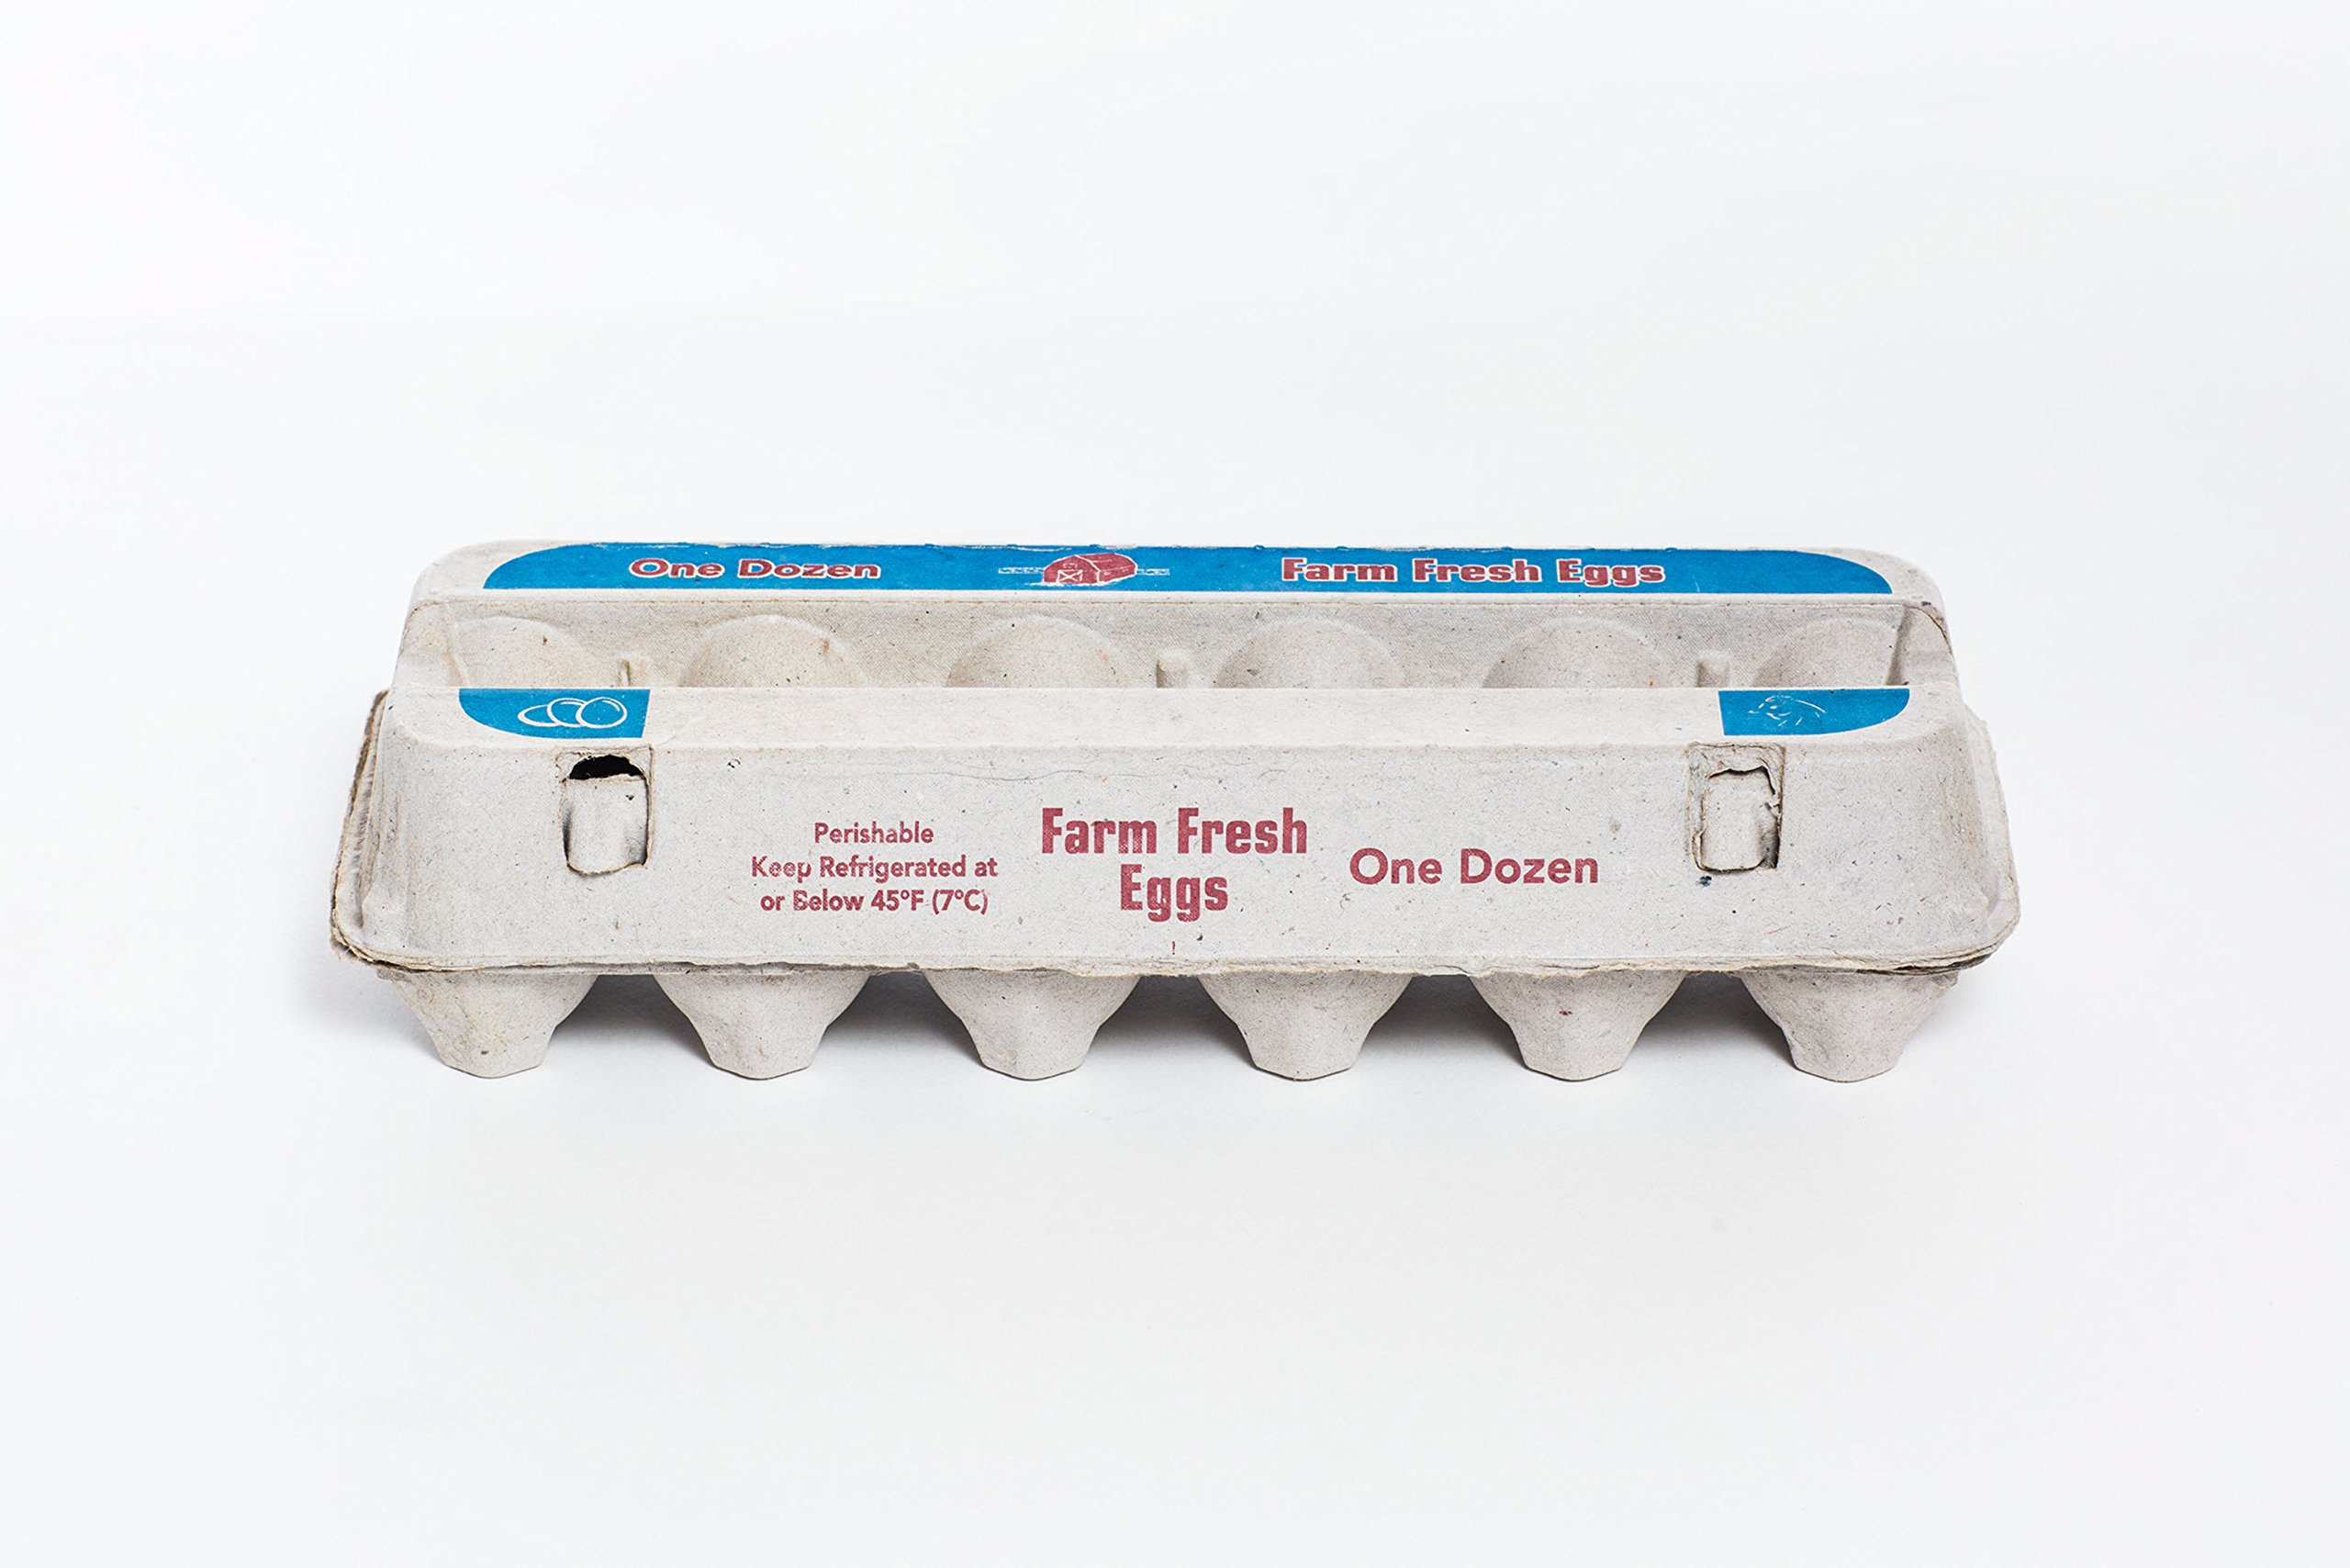 US GENERIC NO GRADE/NO SIZE GUARDIAN EGG CARTONS - 140pcs by Guardian